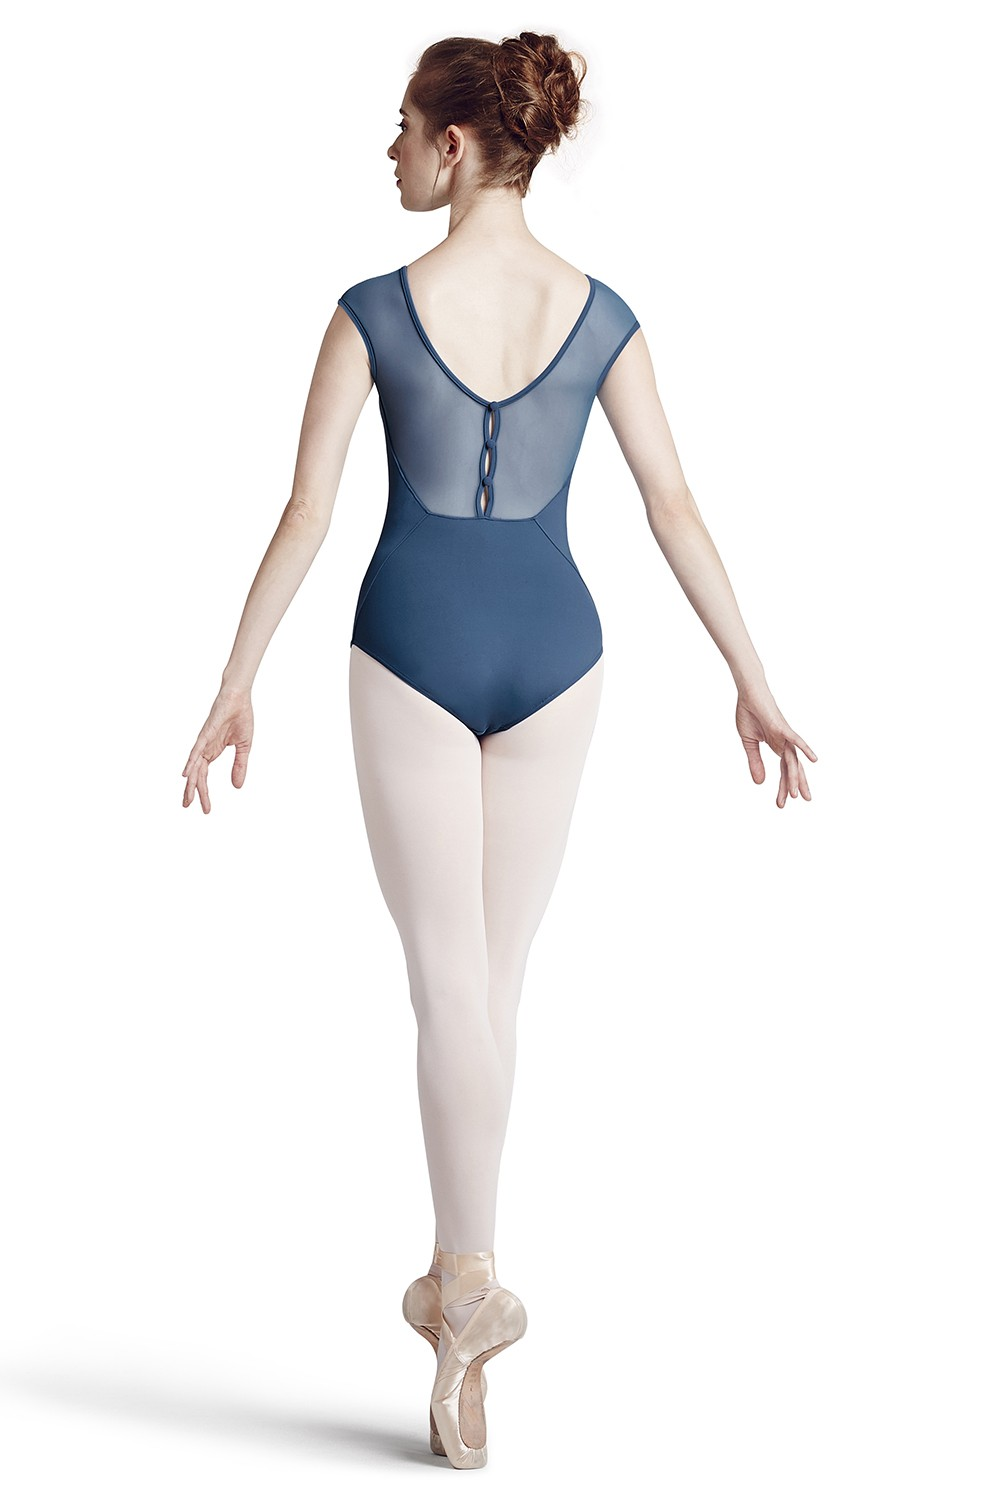 Saviera Women's Dance Leotards